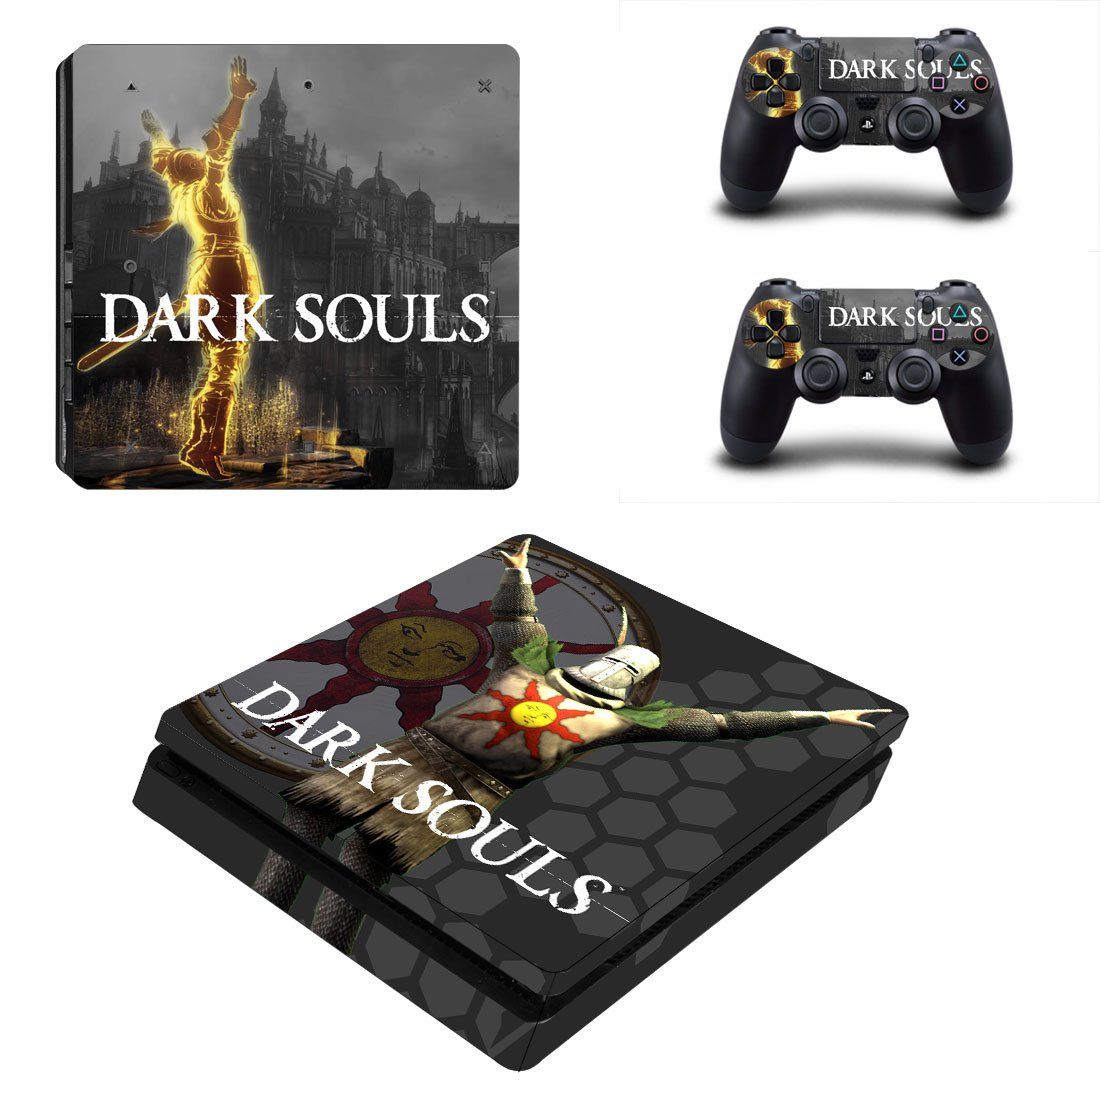 Dark Souls PS4 Slim Skin Sticker Decals PS4 Console And Controllers Protect Your PS4